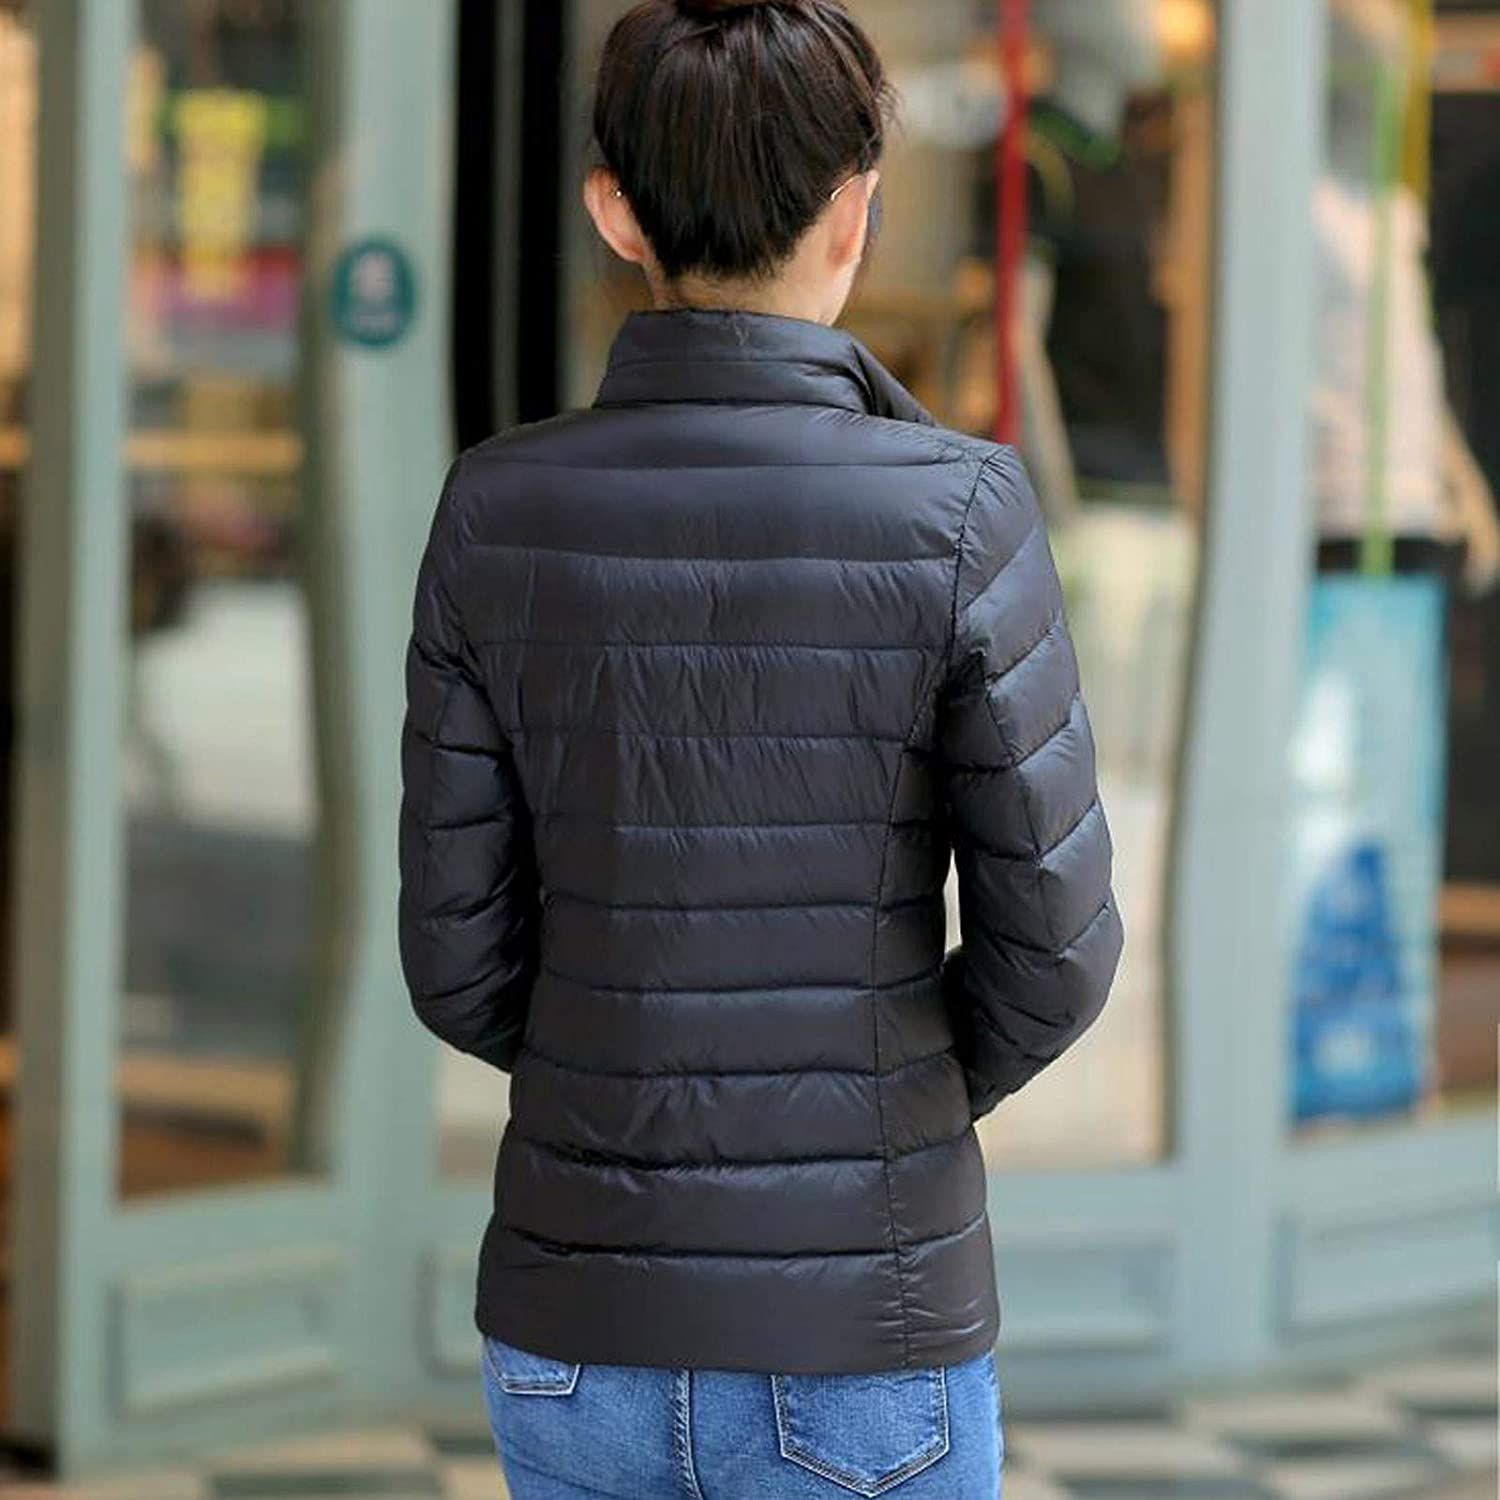 Nopeak Fashion Women Down Jacket with Pockets,Light and Warm Zipper Up Winter Jacket,Solid Color Coats for Outdoor